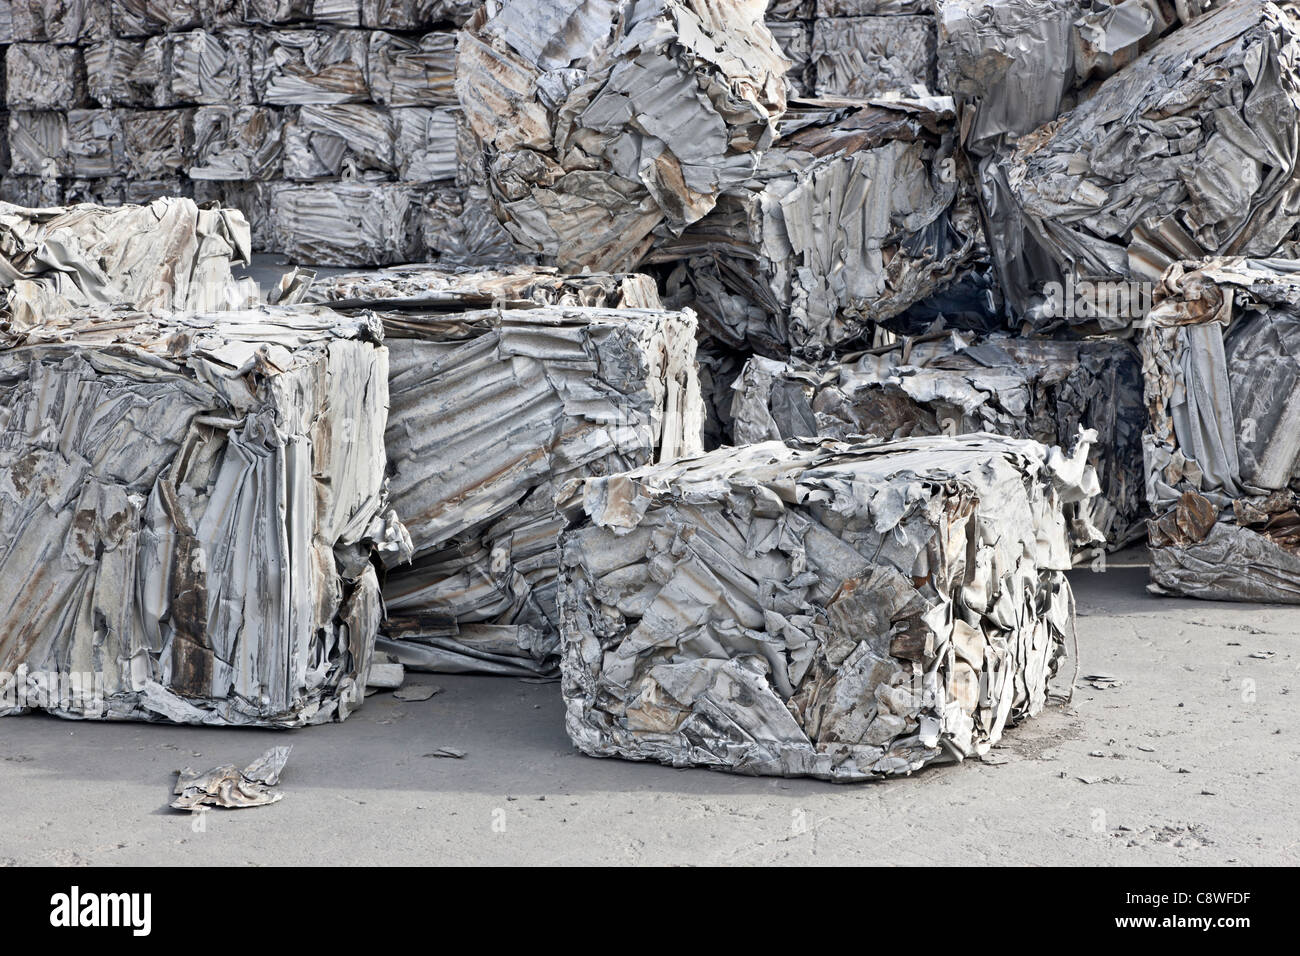 Recycling, aluminum compacted sheeting - Stock Image